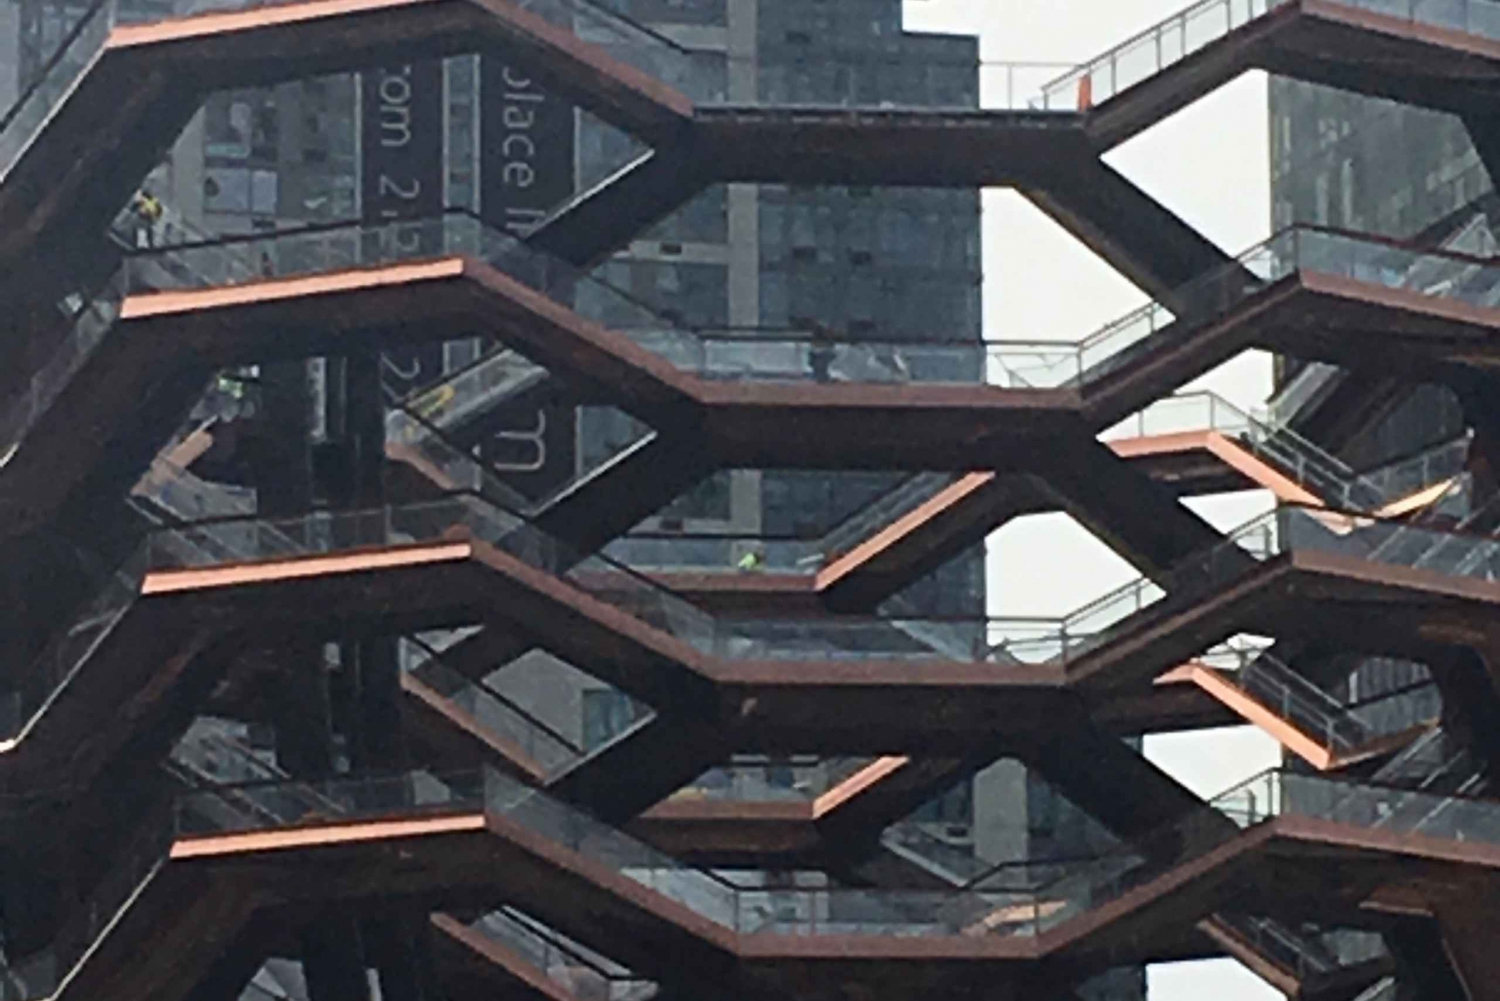 New York City: the High Line and the Vessel Guided Tour